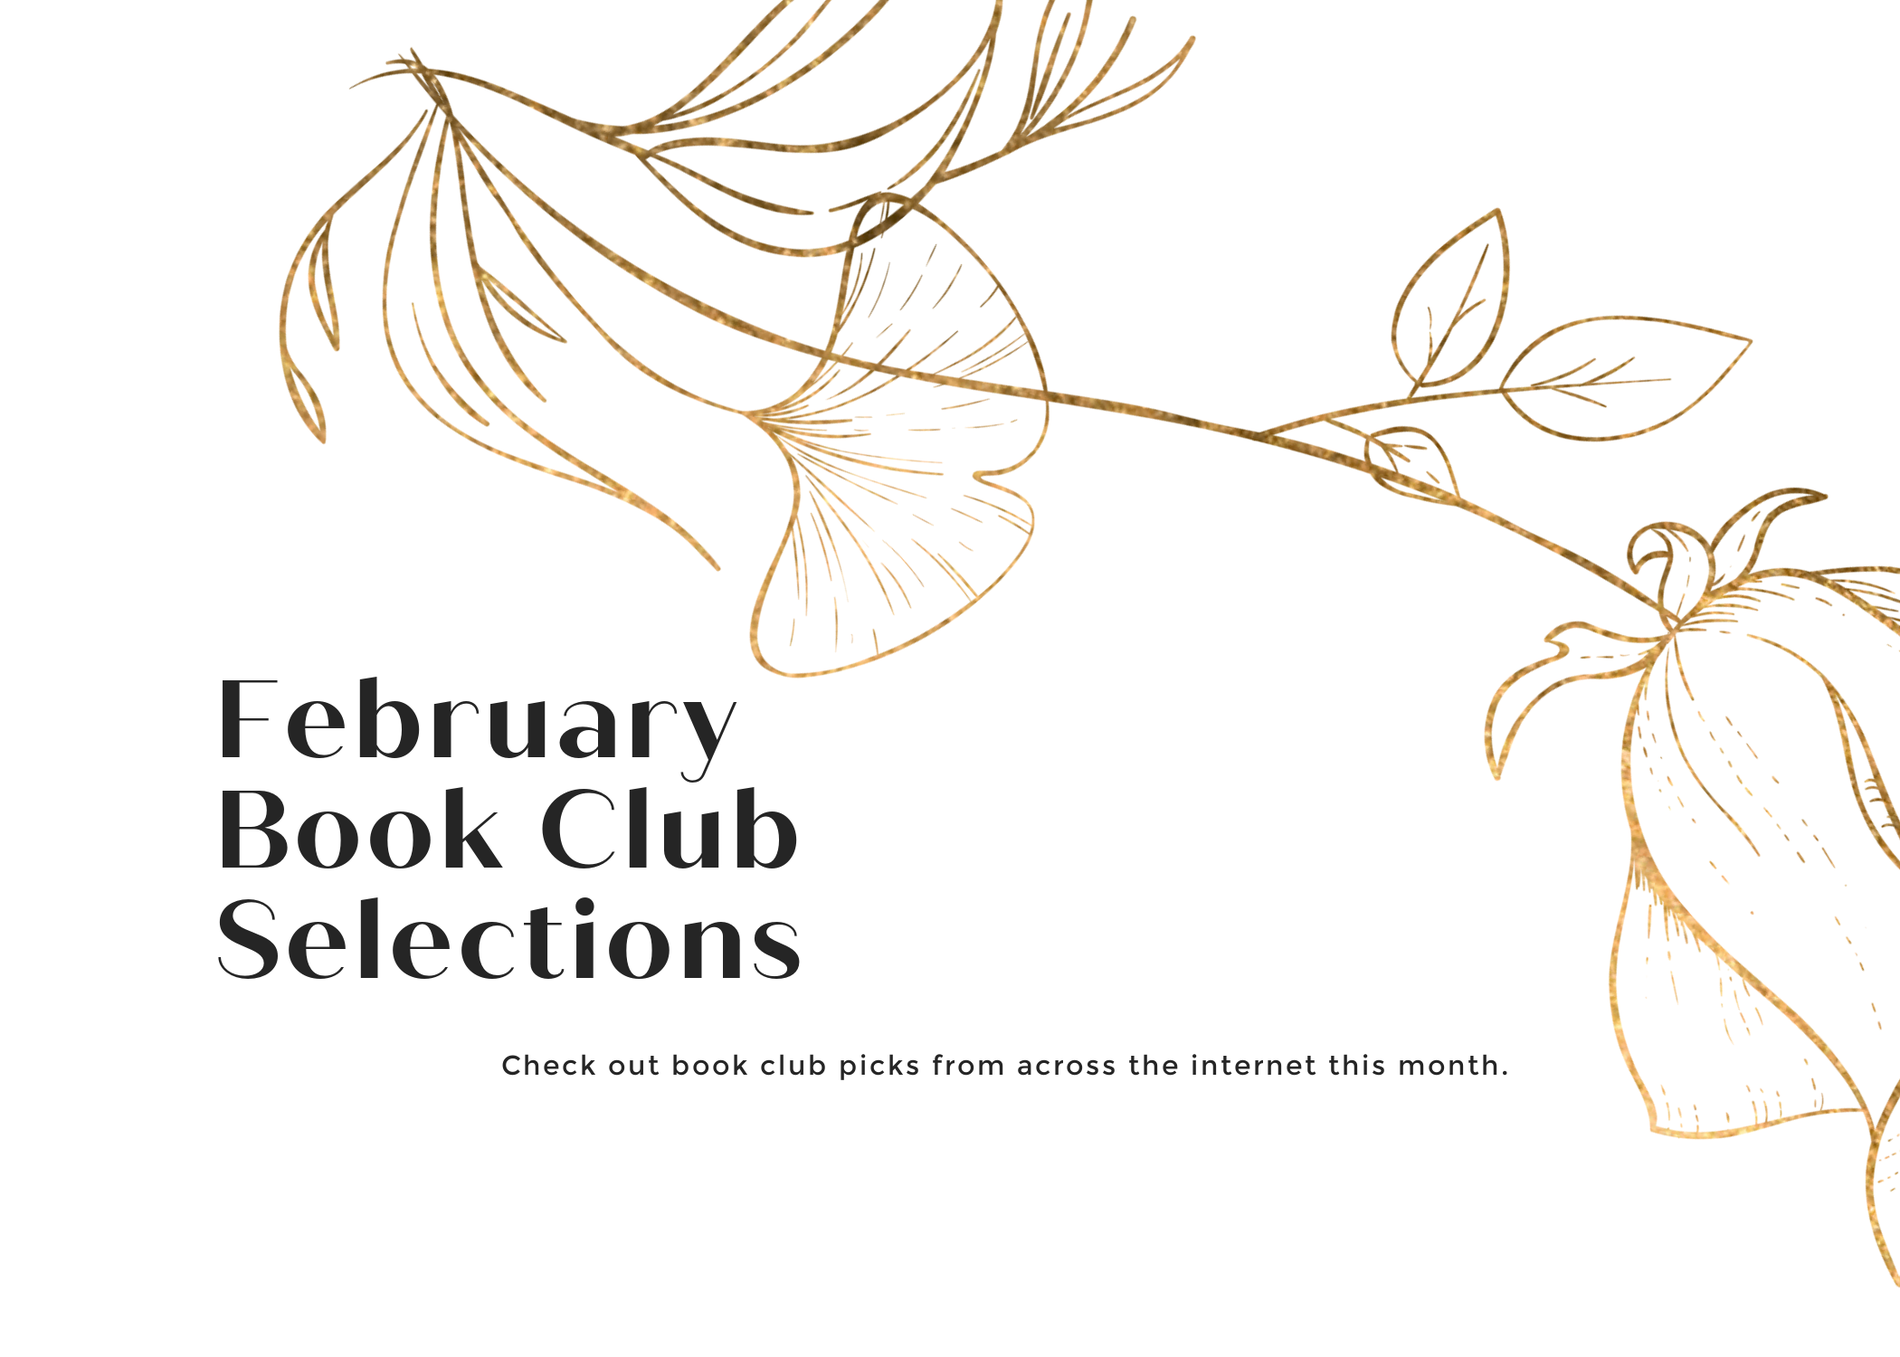 February 2021 Book Club Selections